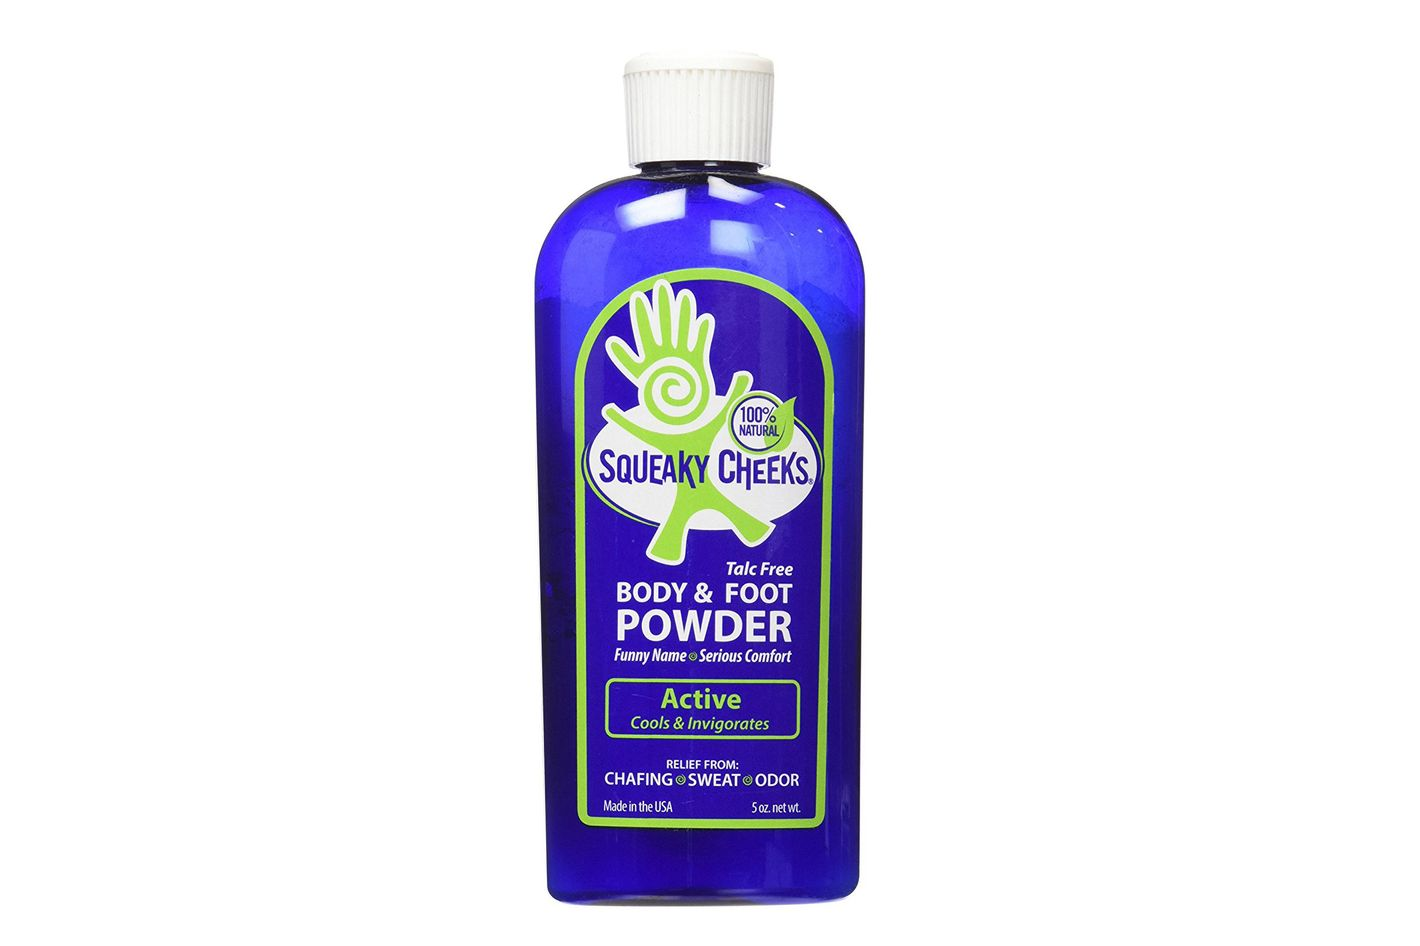 Squeaky Cheeks Powder